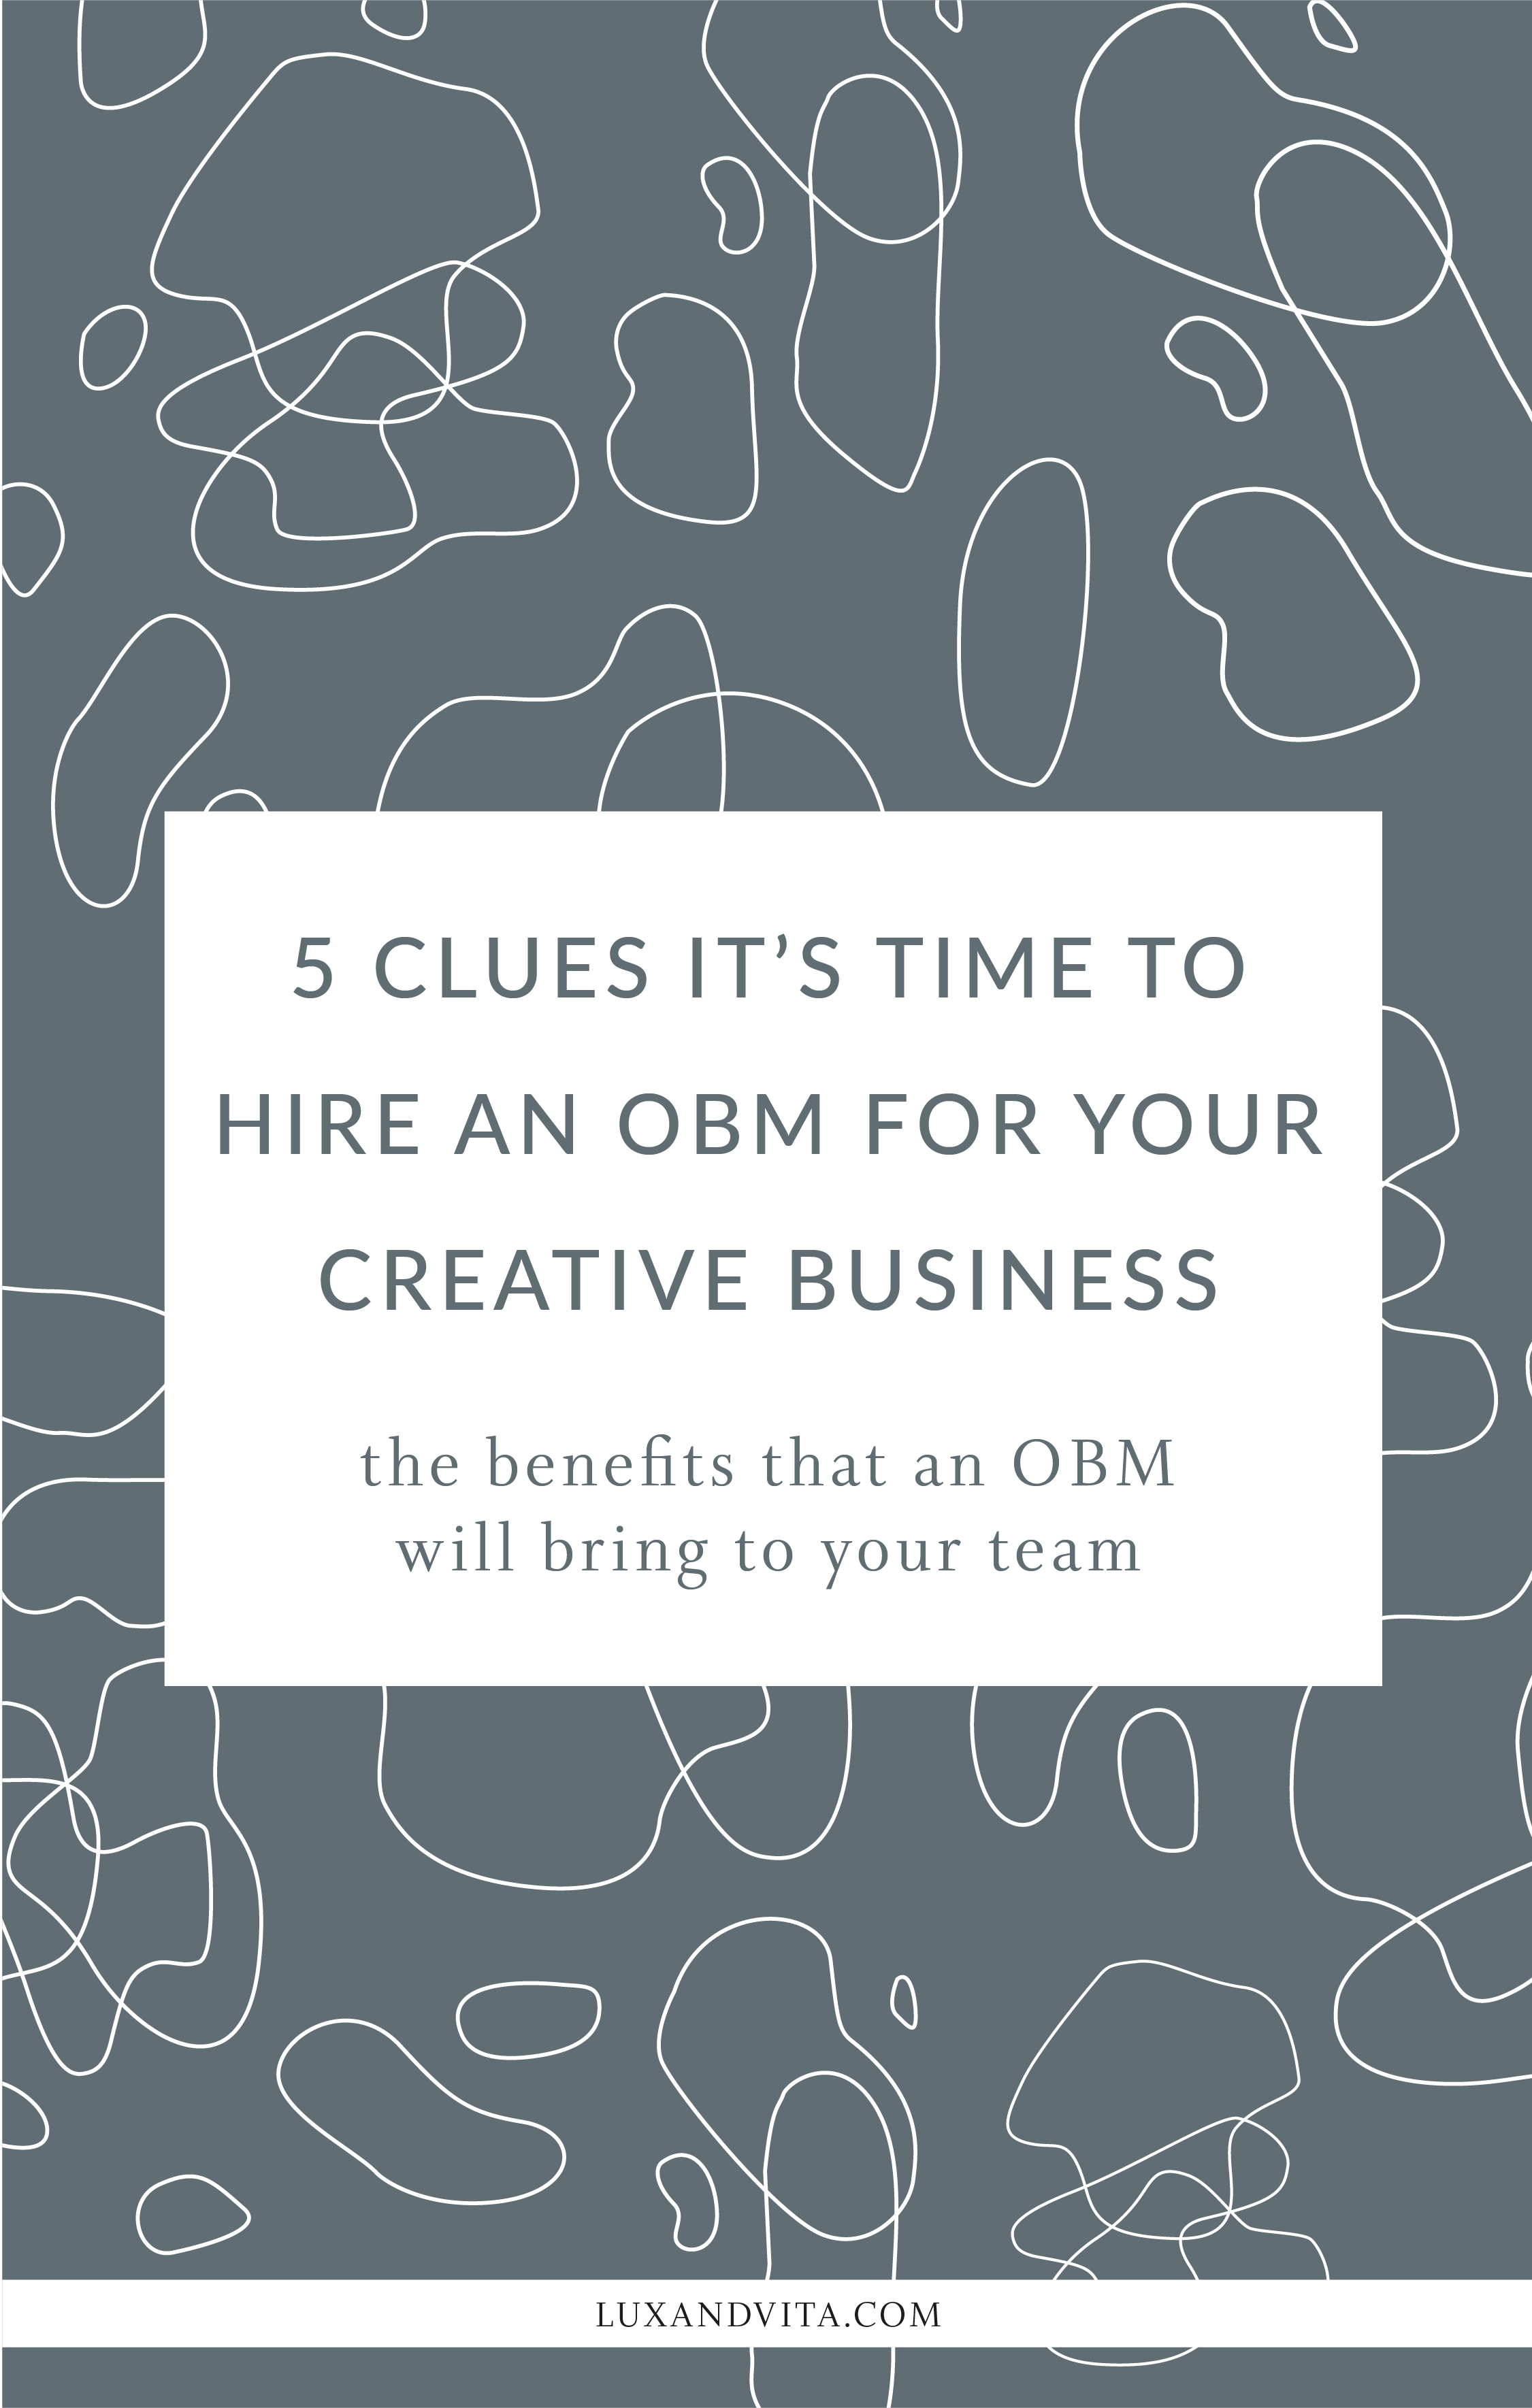 5 clues it's time to hire an OBM for your creative business_Pinterest 4.jpg